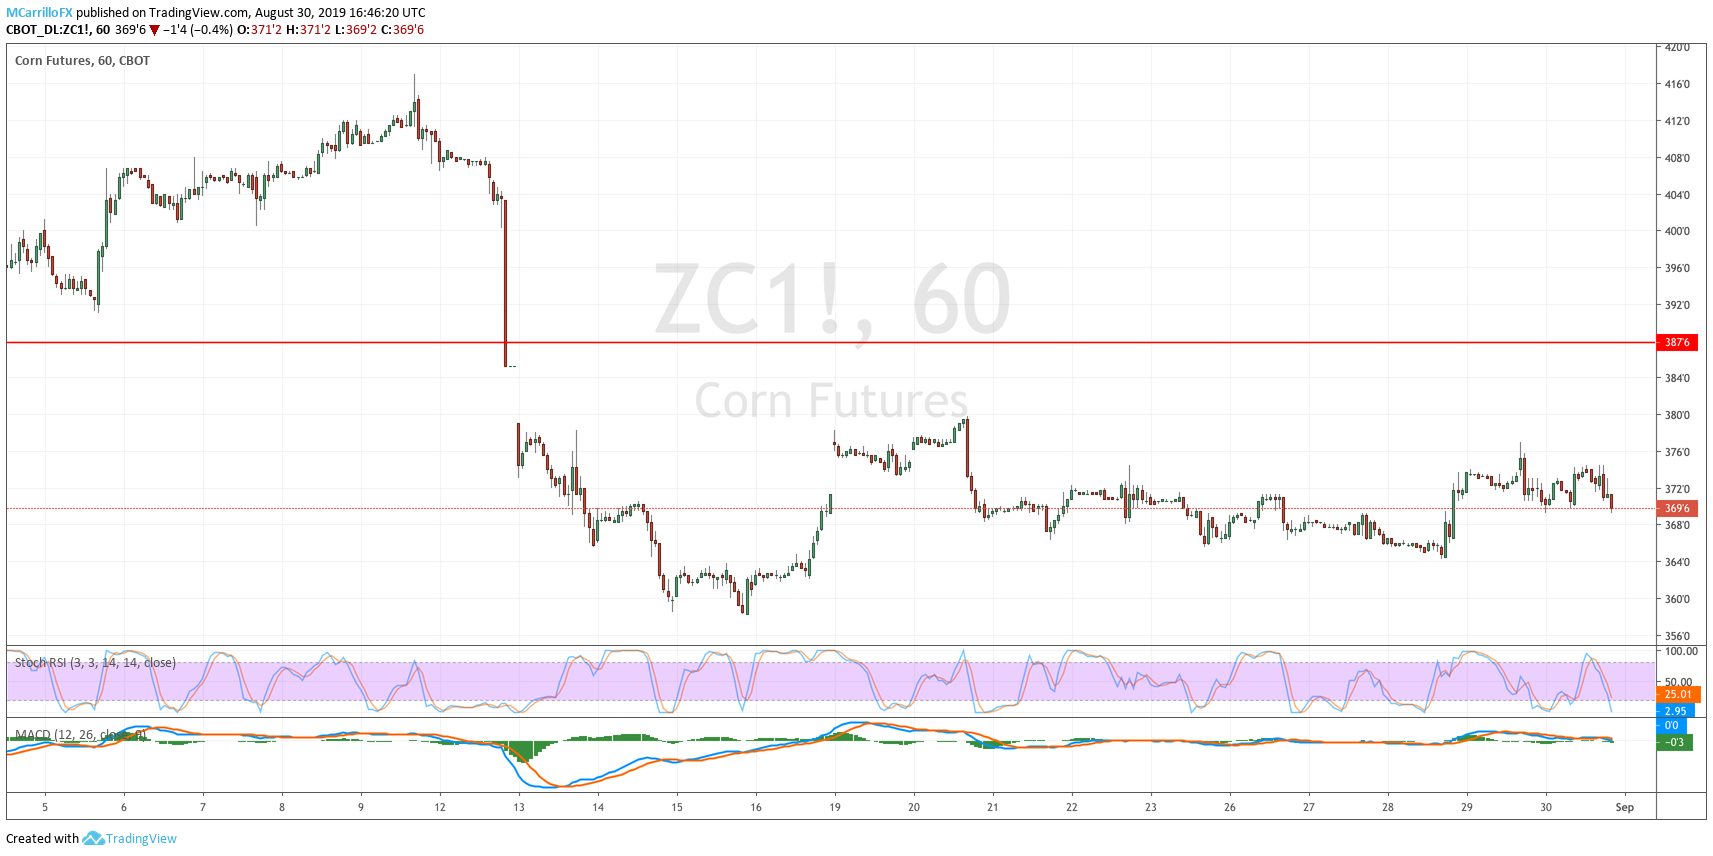 ZC1 Futures of Corn 1-hour chart August 30